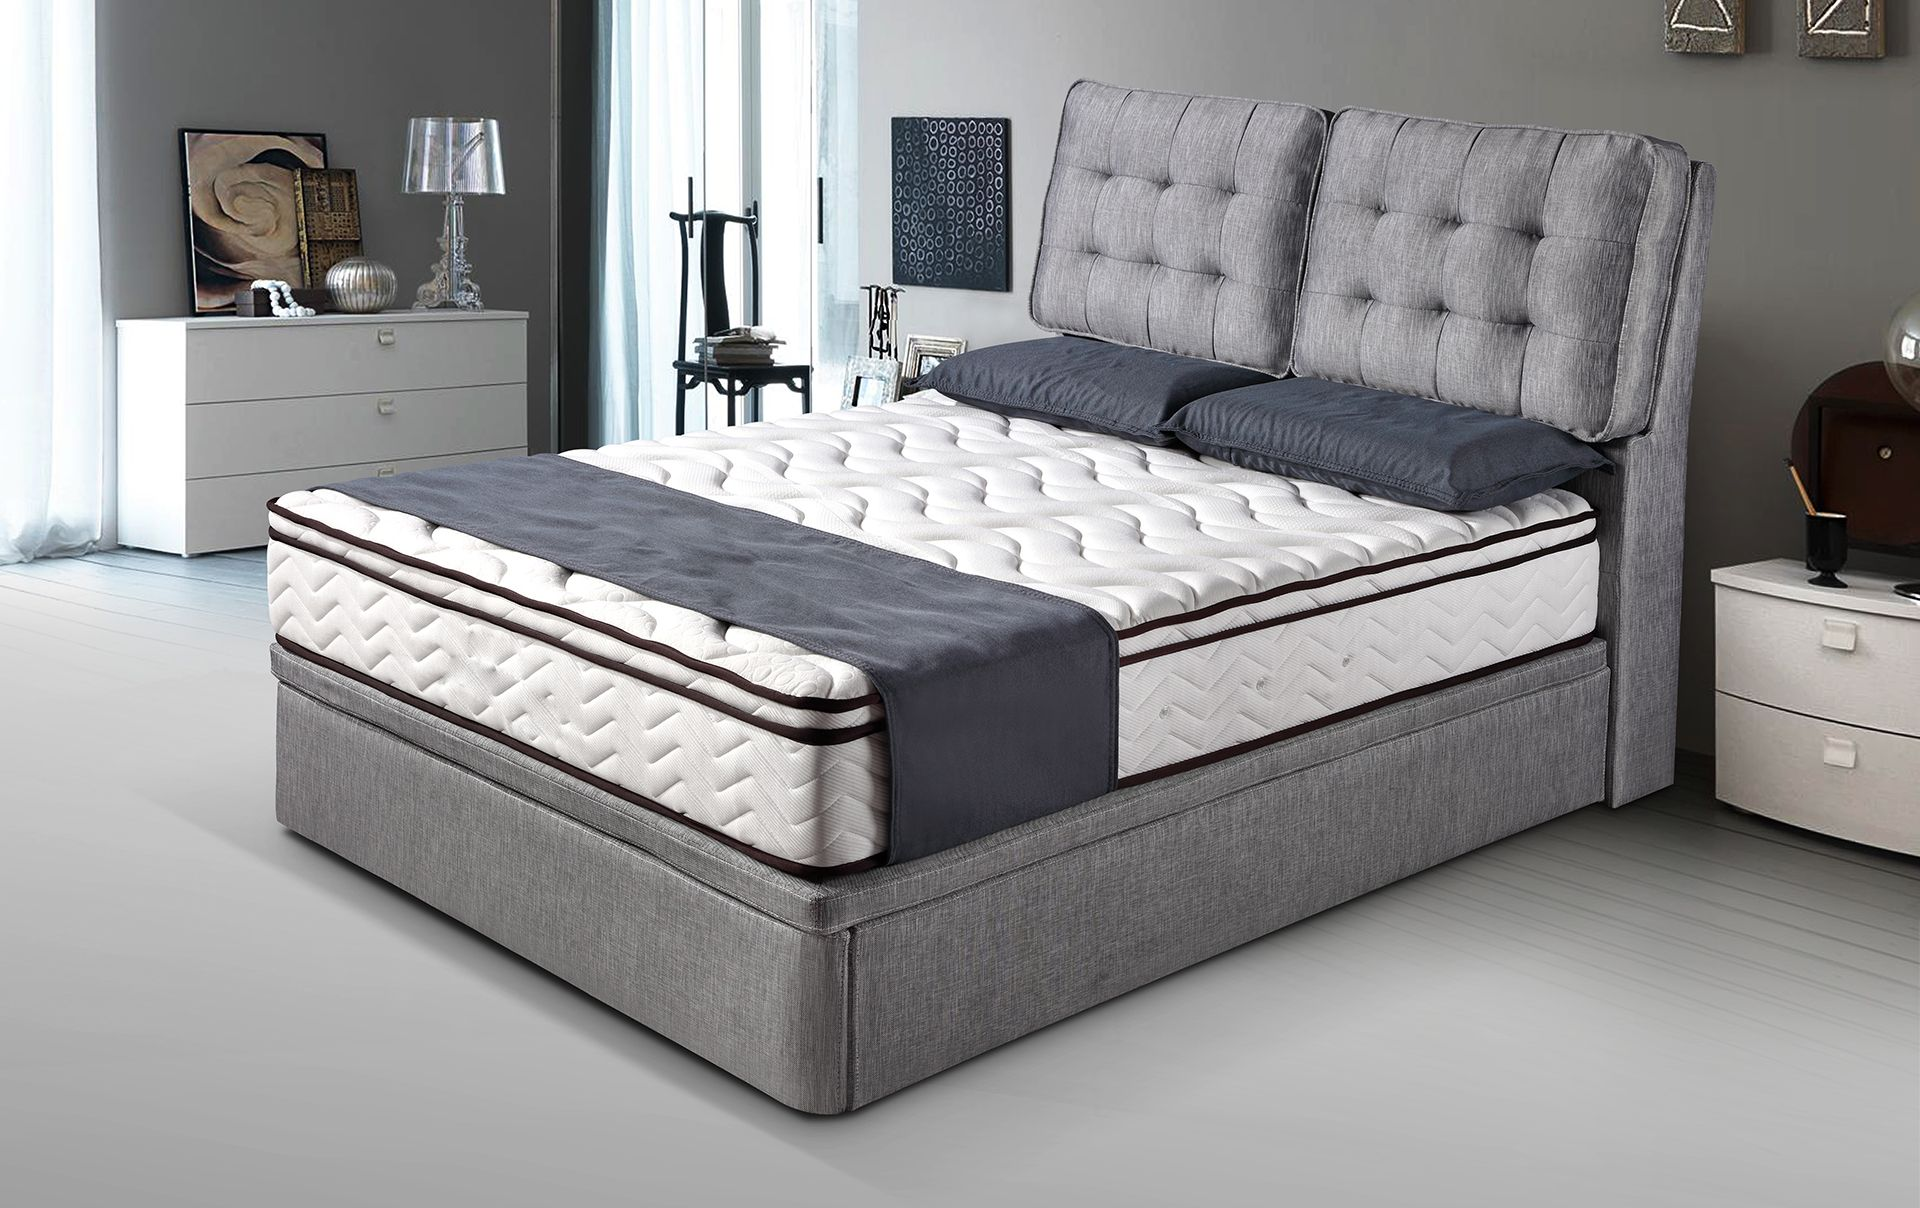 c9f6158d0100 Different design of hydraulic storage bed frames with beautiful foam  headboard.